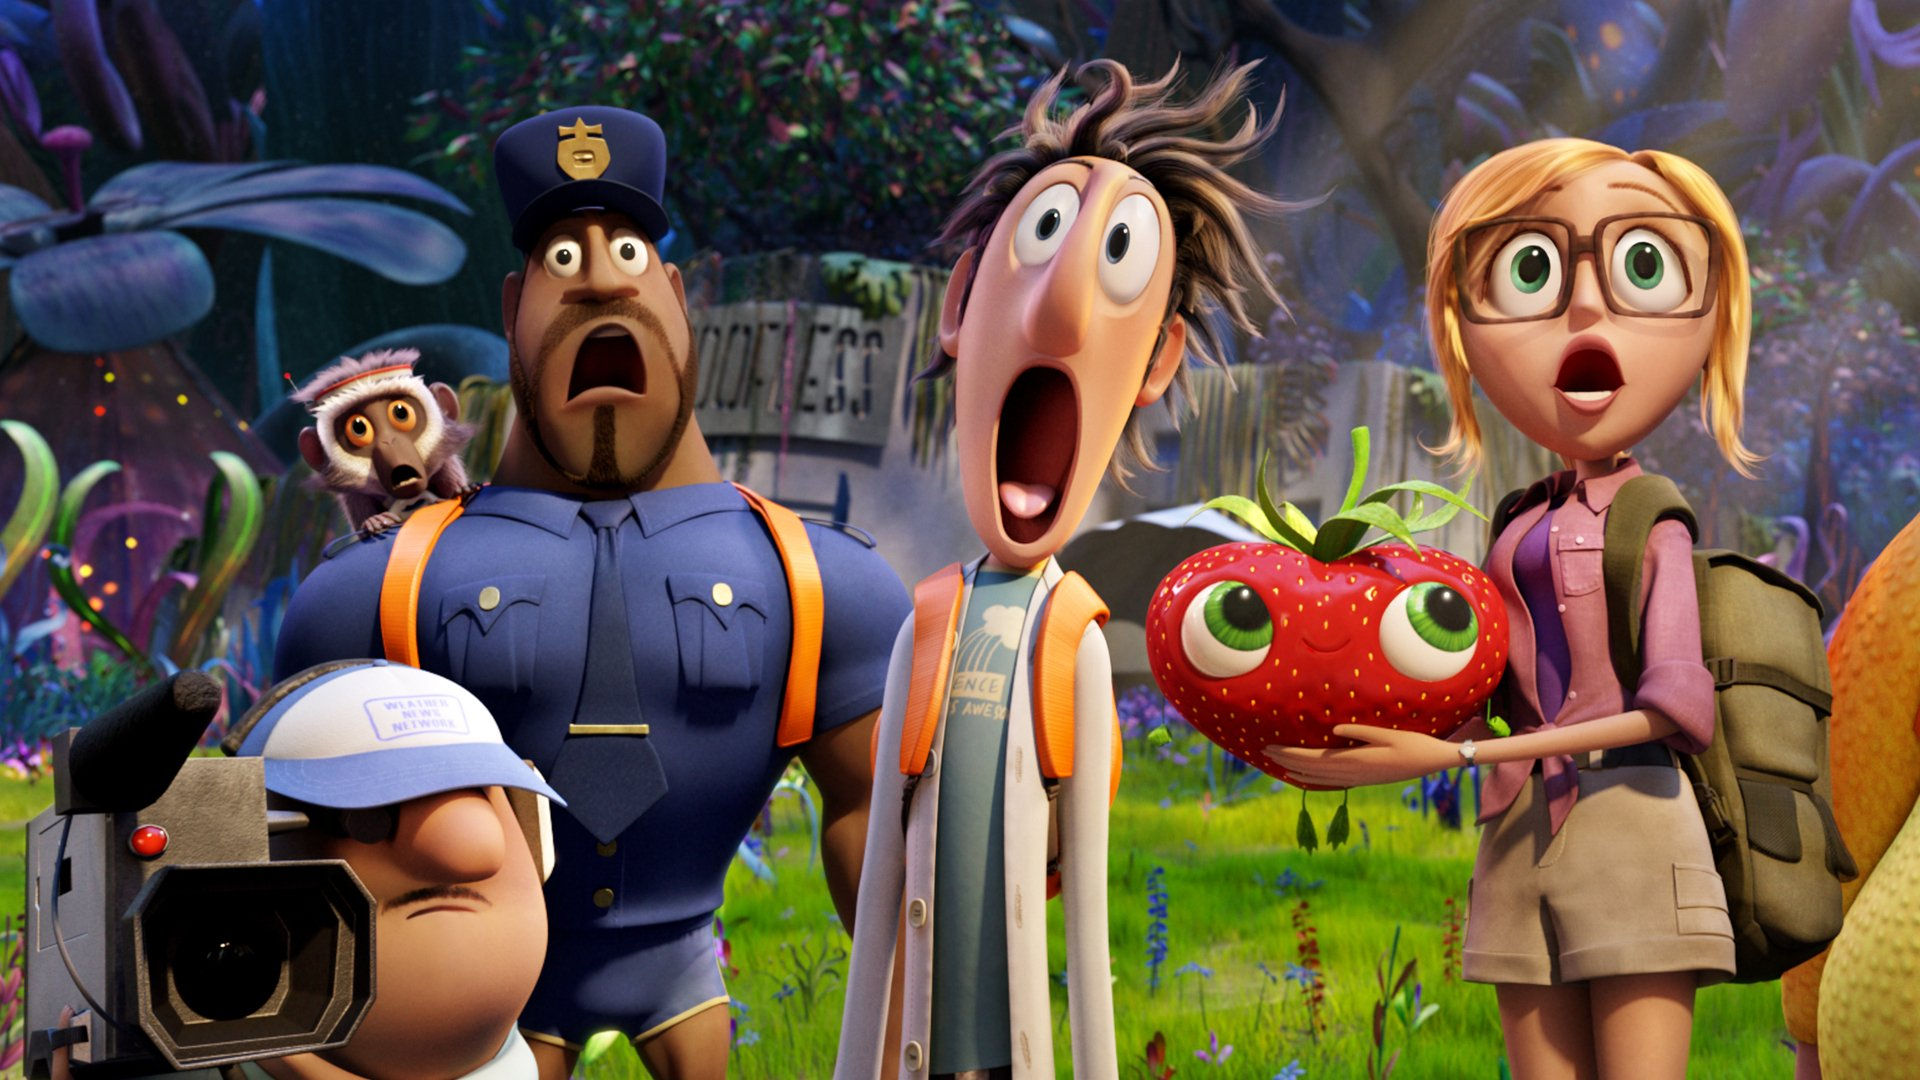 Cloudy With A Chance Of Meatballs 2 HD Wallpaper